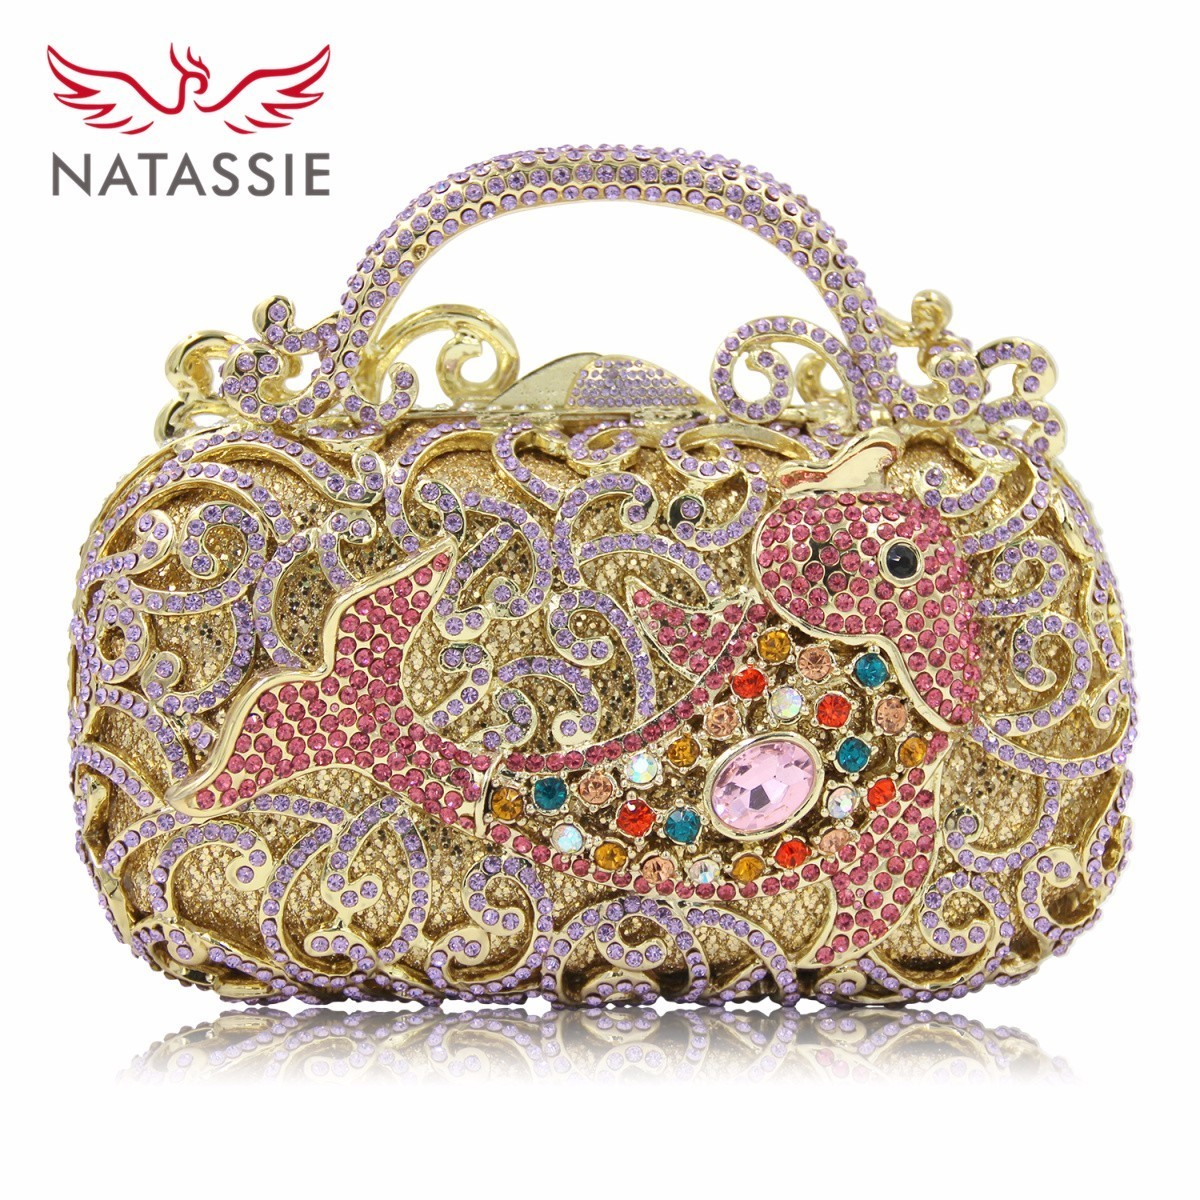 NATASSIE New Design Princess Crystal Purse Long Chain  Ladies Date Clutch Women Evening Bag Birthday Gift Good Quality new forcummins insite date unlock proramm